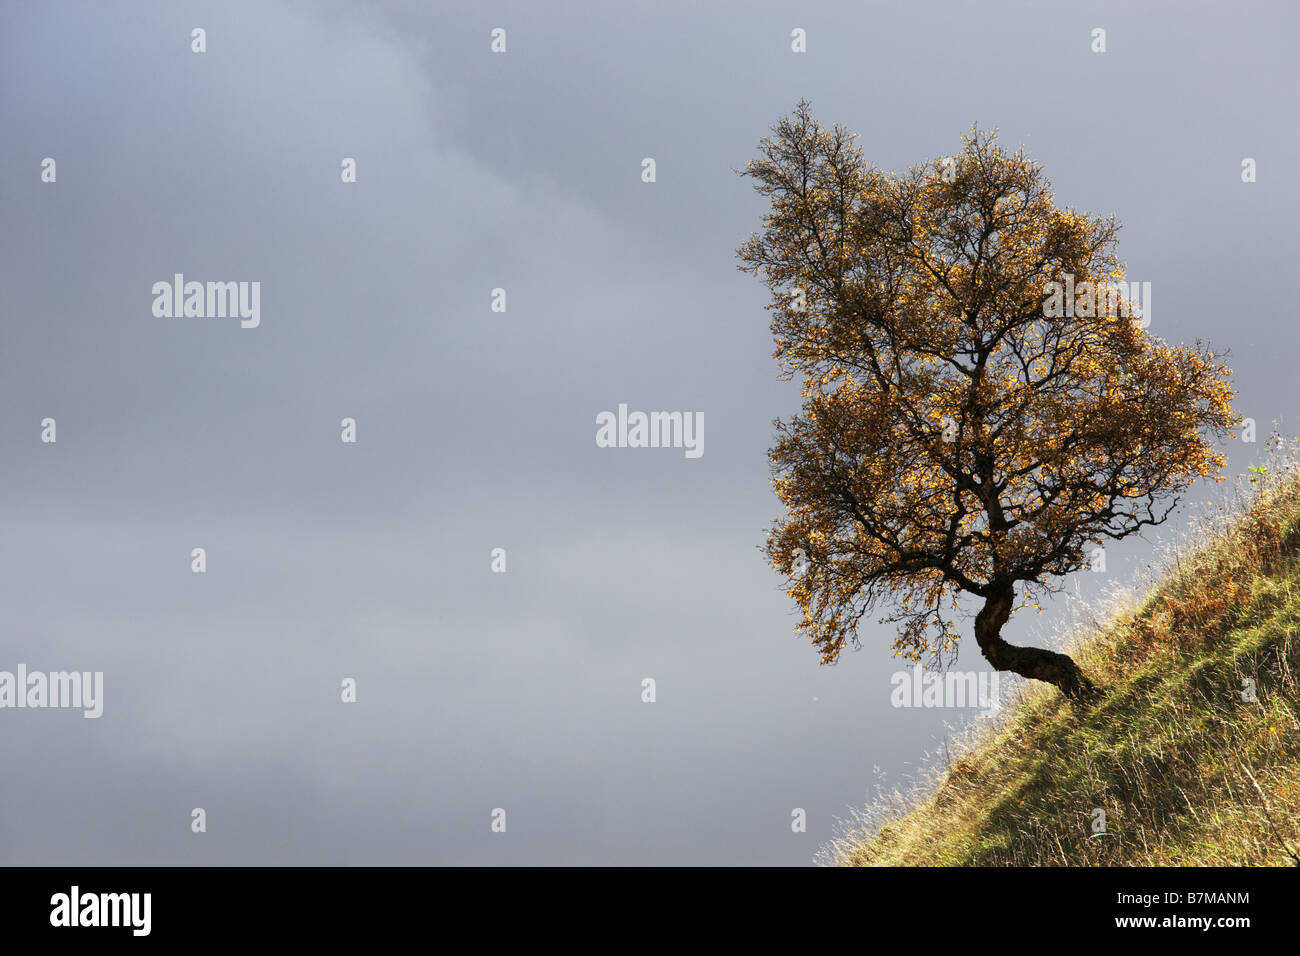 Small tree on steep slope against dark grey clouds Perthshire Scotland - Stock Image